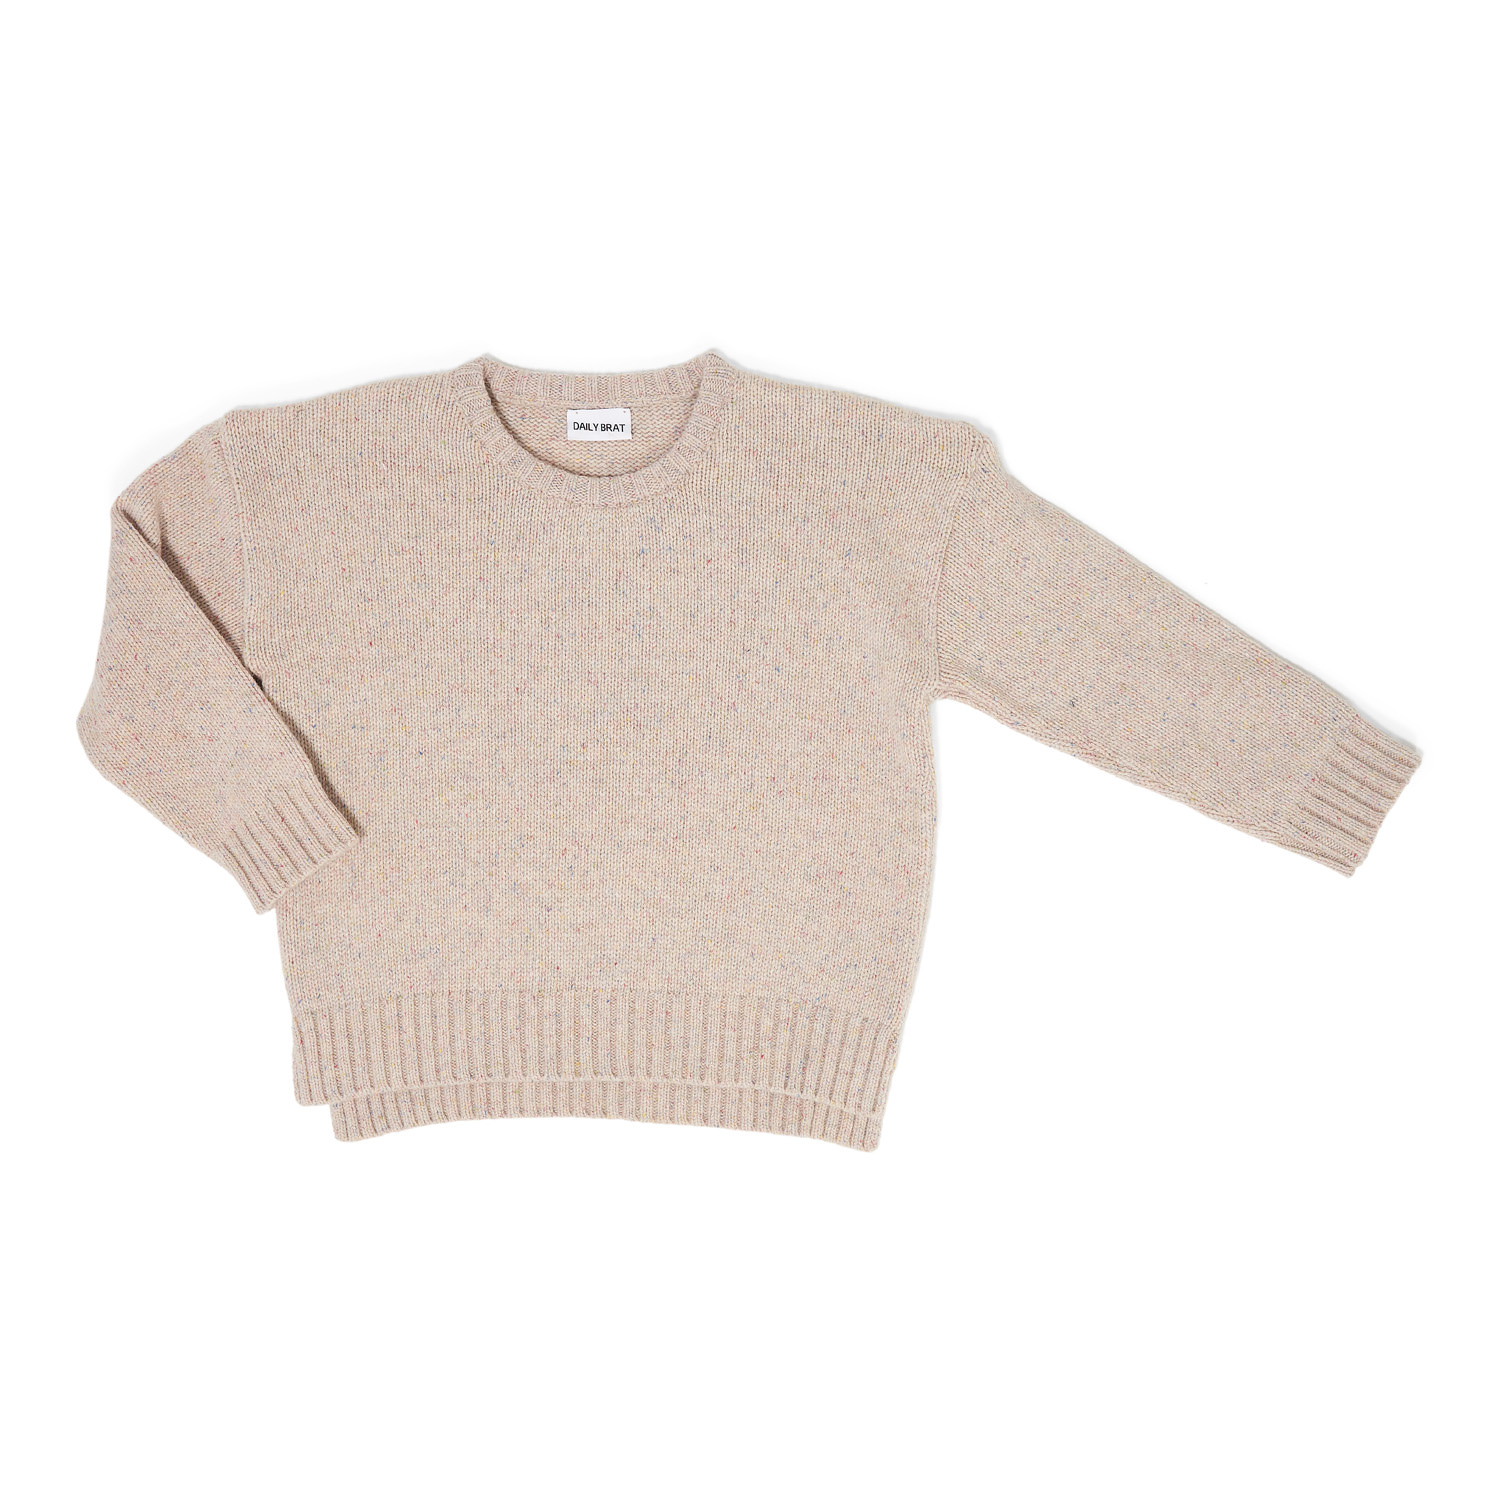 Ashton oversized freckled knit ivory front.jpg